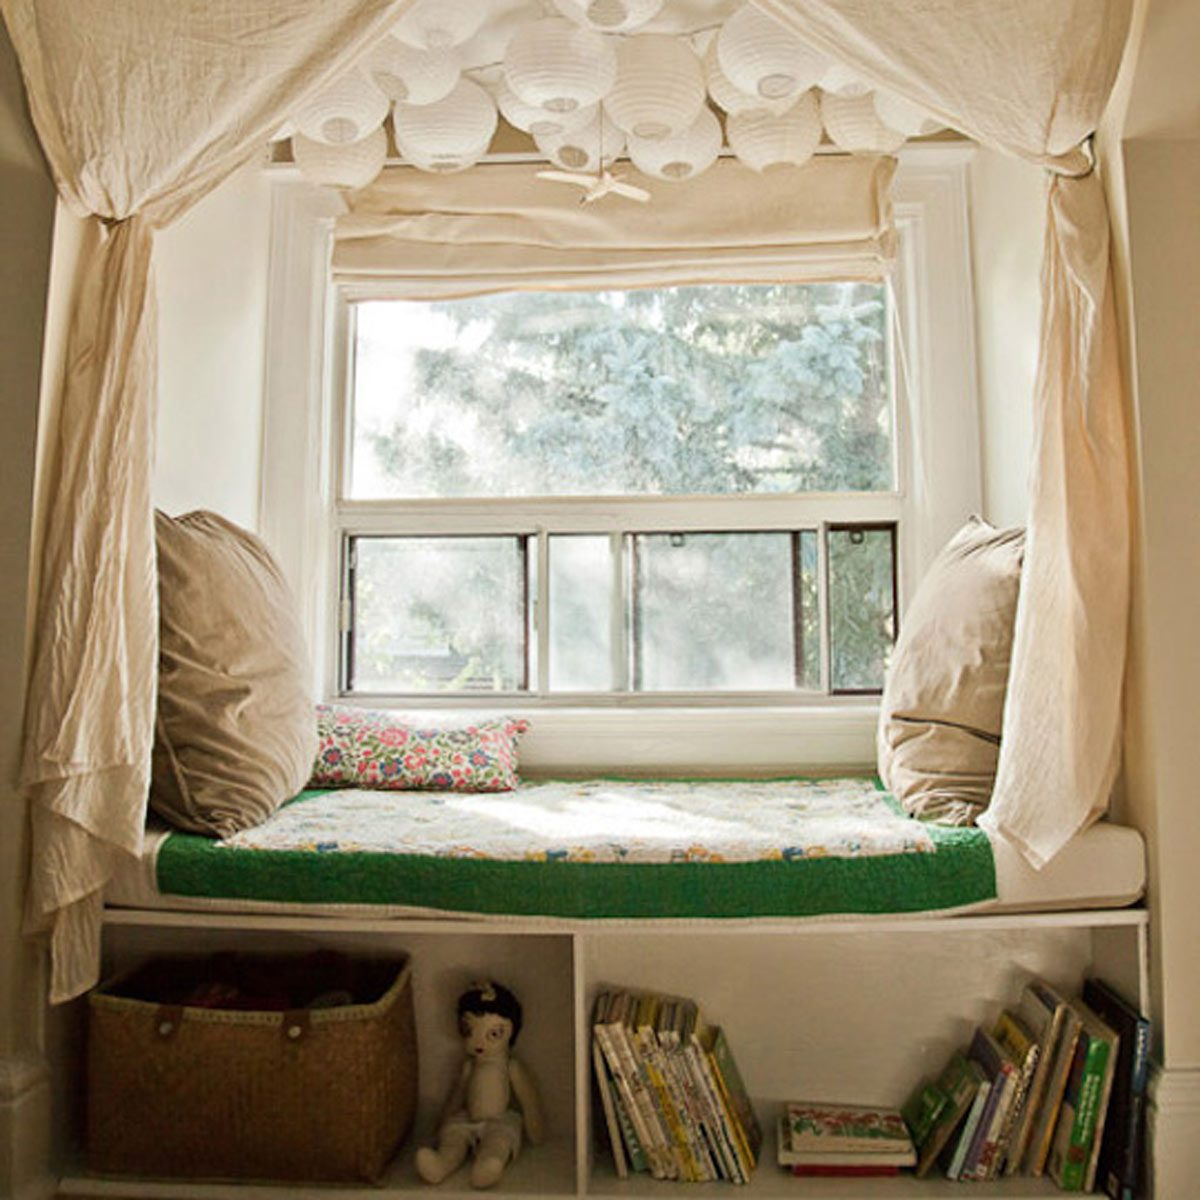 10 Reading Nook Ideas — The Family Handyman on Nook's Cranny Design Ideas  id=17169